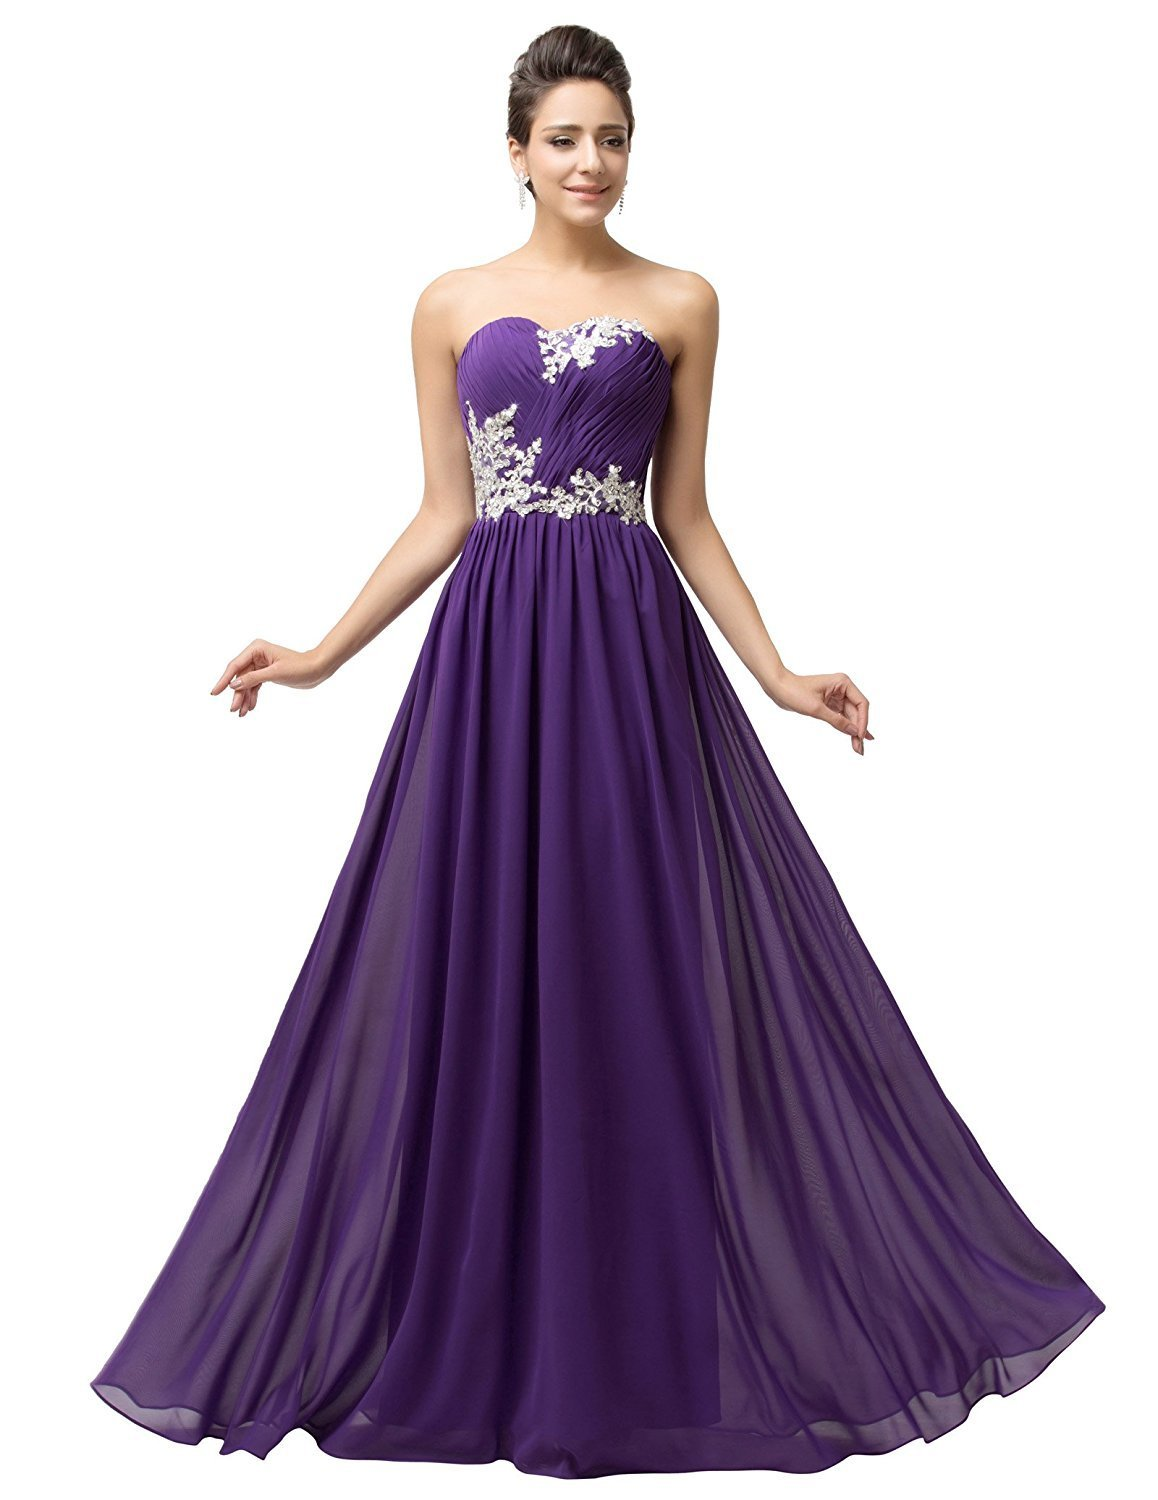 2018 Strapless Evening Dress Appliques Purple Chiffon Long Prom Dress Party Gown